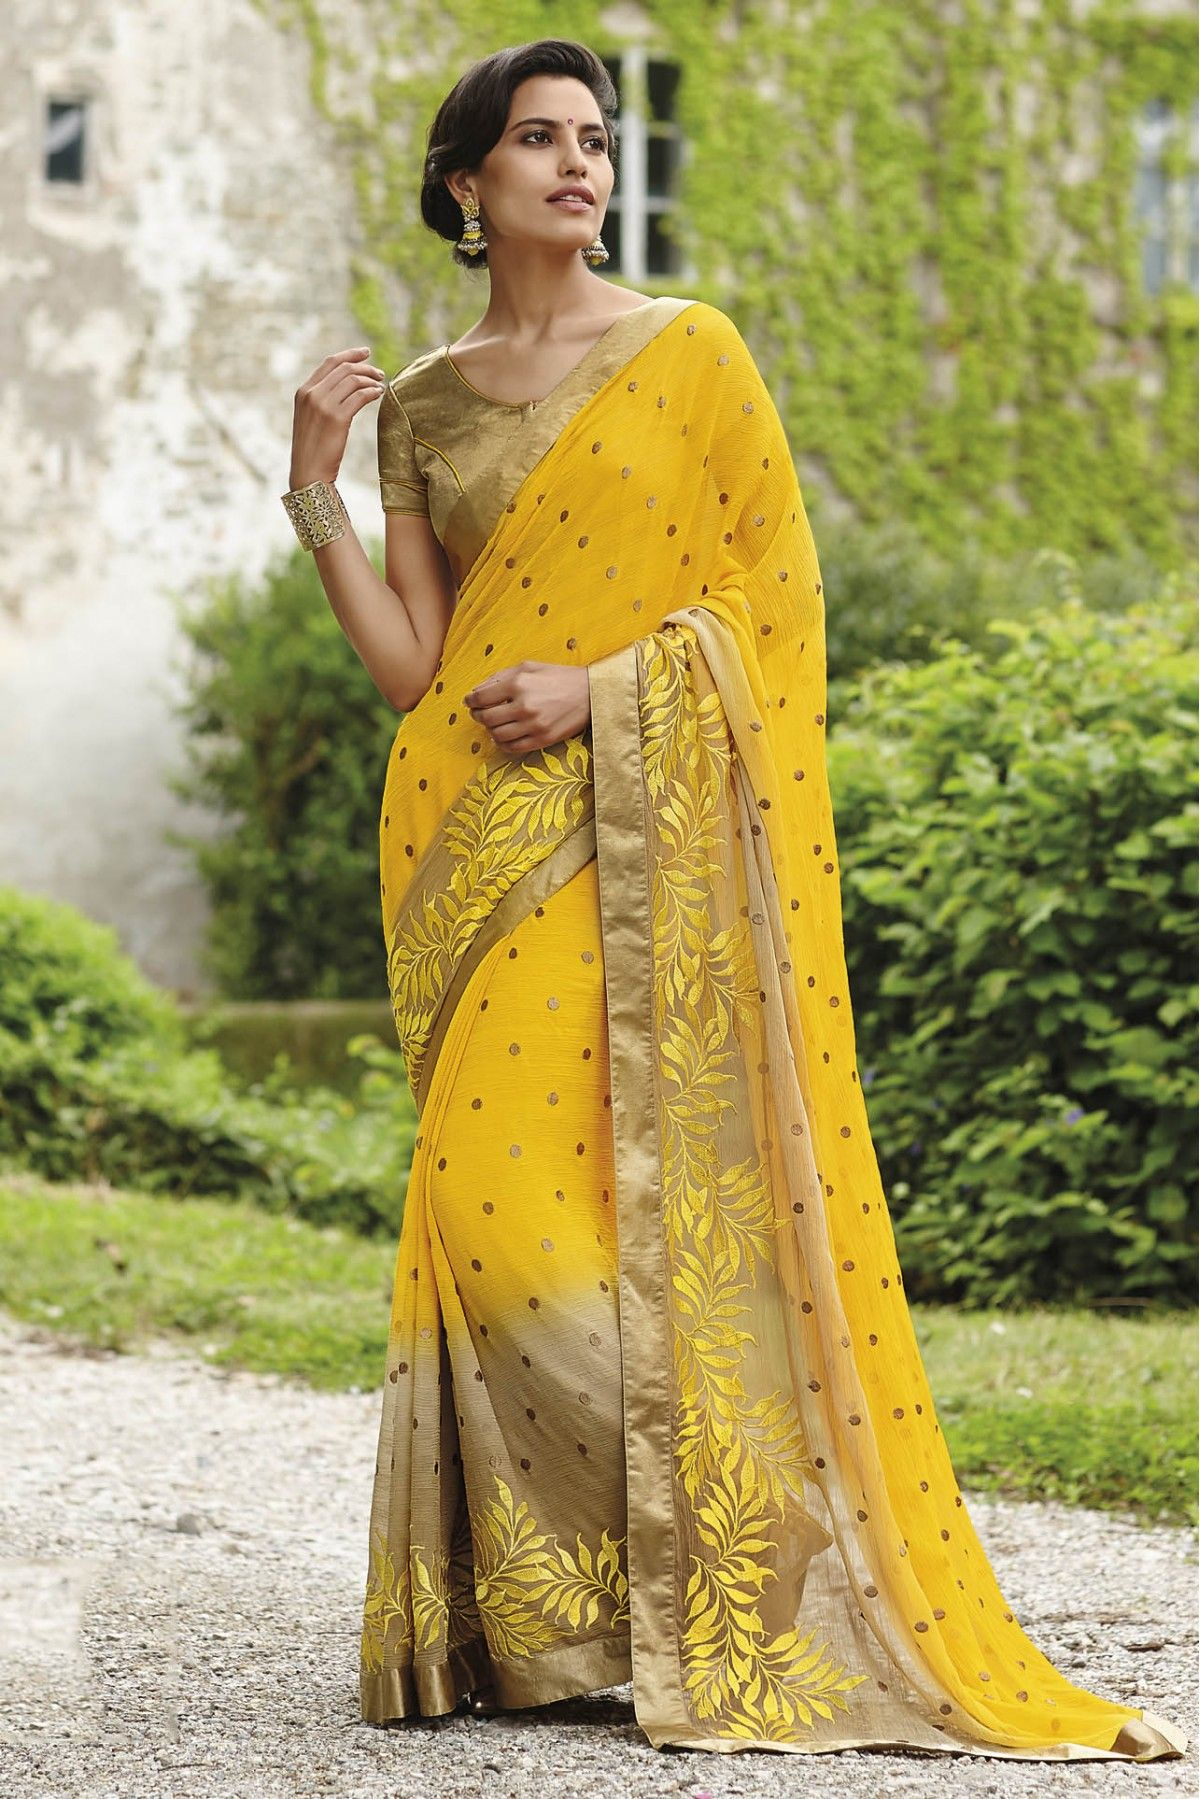 f50b9d762f Yellow Colour Designer Saree Comes With Pure Chiffon Fabric. Its an Party  wear saree Comes With Matching Blouse Which Can Be Stitched Up to Size 44.